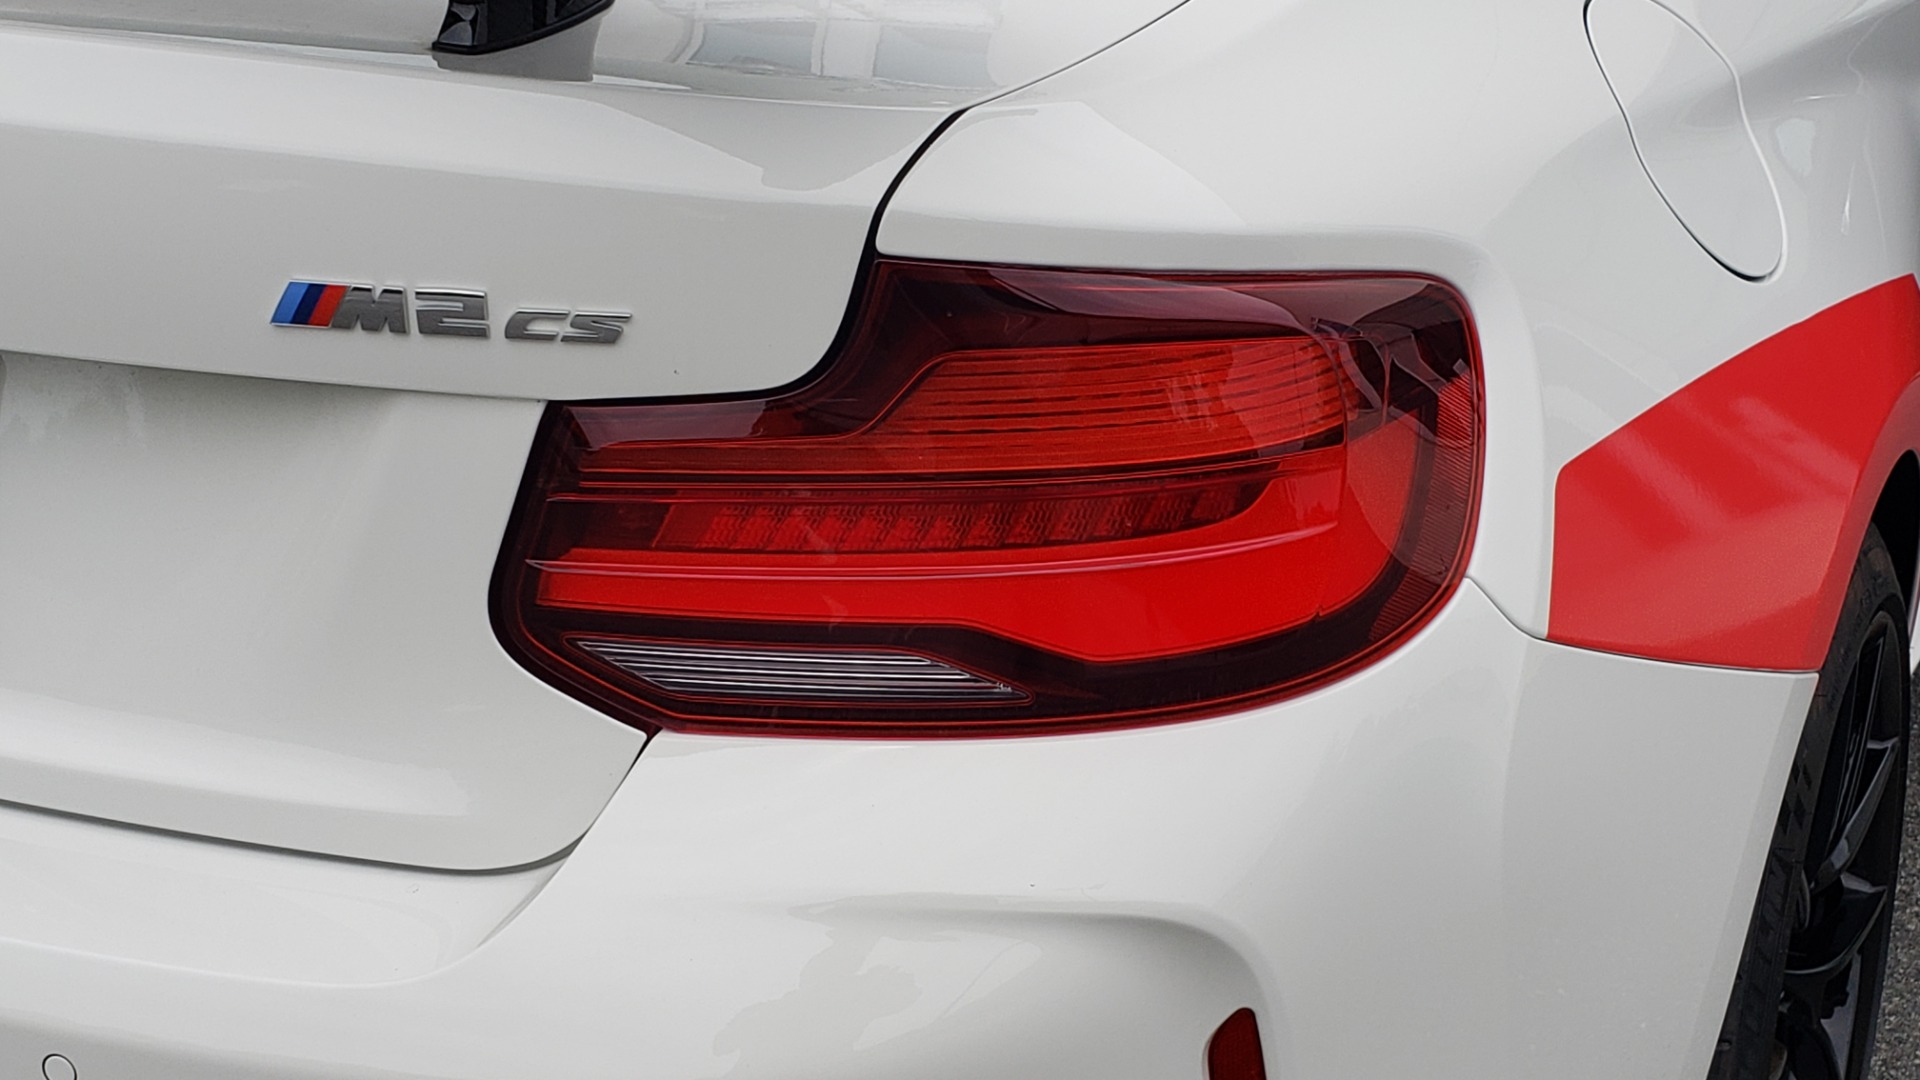 Used 2020 BMW M2 CS COMPETITION 405HP / COUPE / MANUAL / NAV / H/K SOUND / REARVIEW for sale $105,995 at Formula Imports in Charlotte NC 28227 33